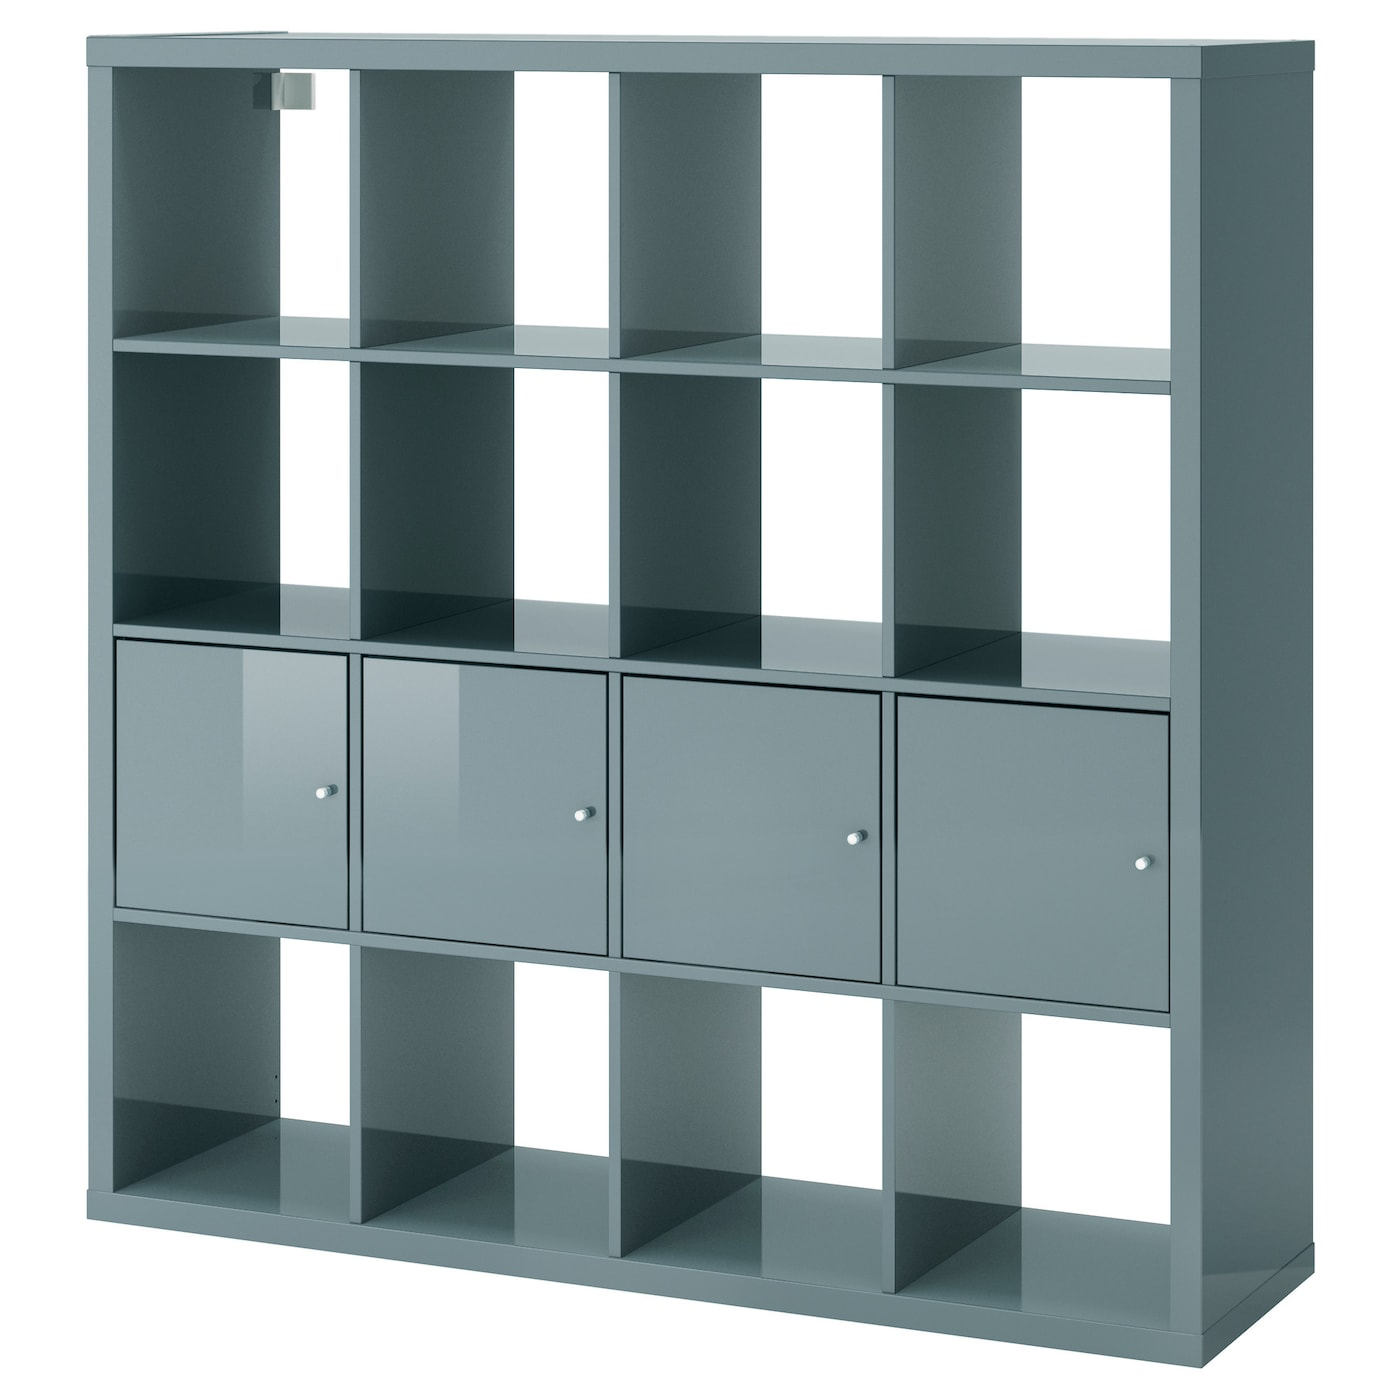 kallax shelving unit with 4 inserts high gloss grey turquoise 147x147 cm ikea. Black Bedroom Furniture Sets. Home Design Ideas